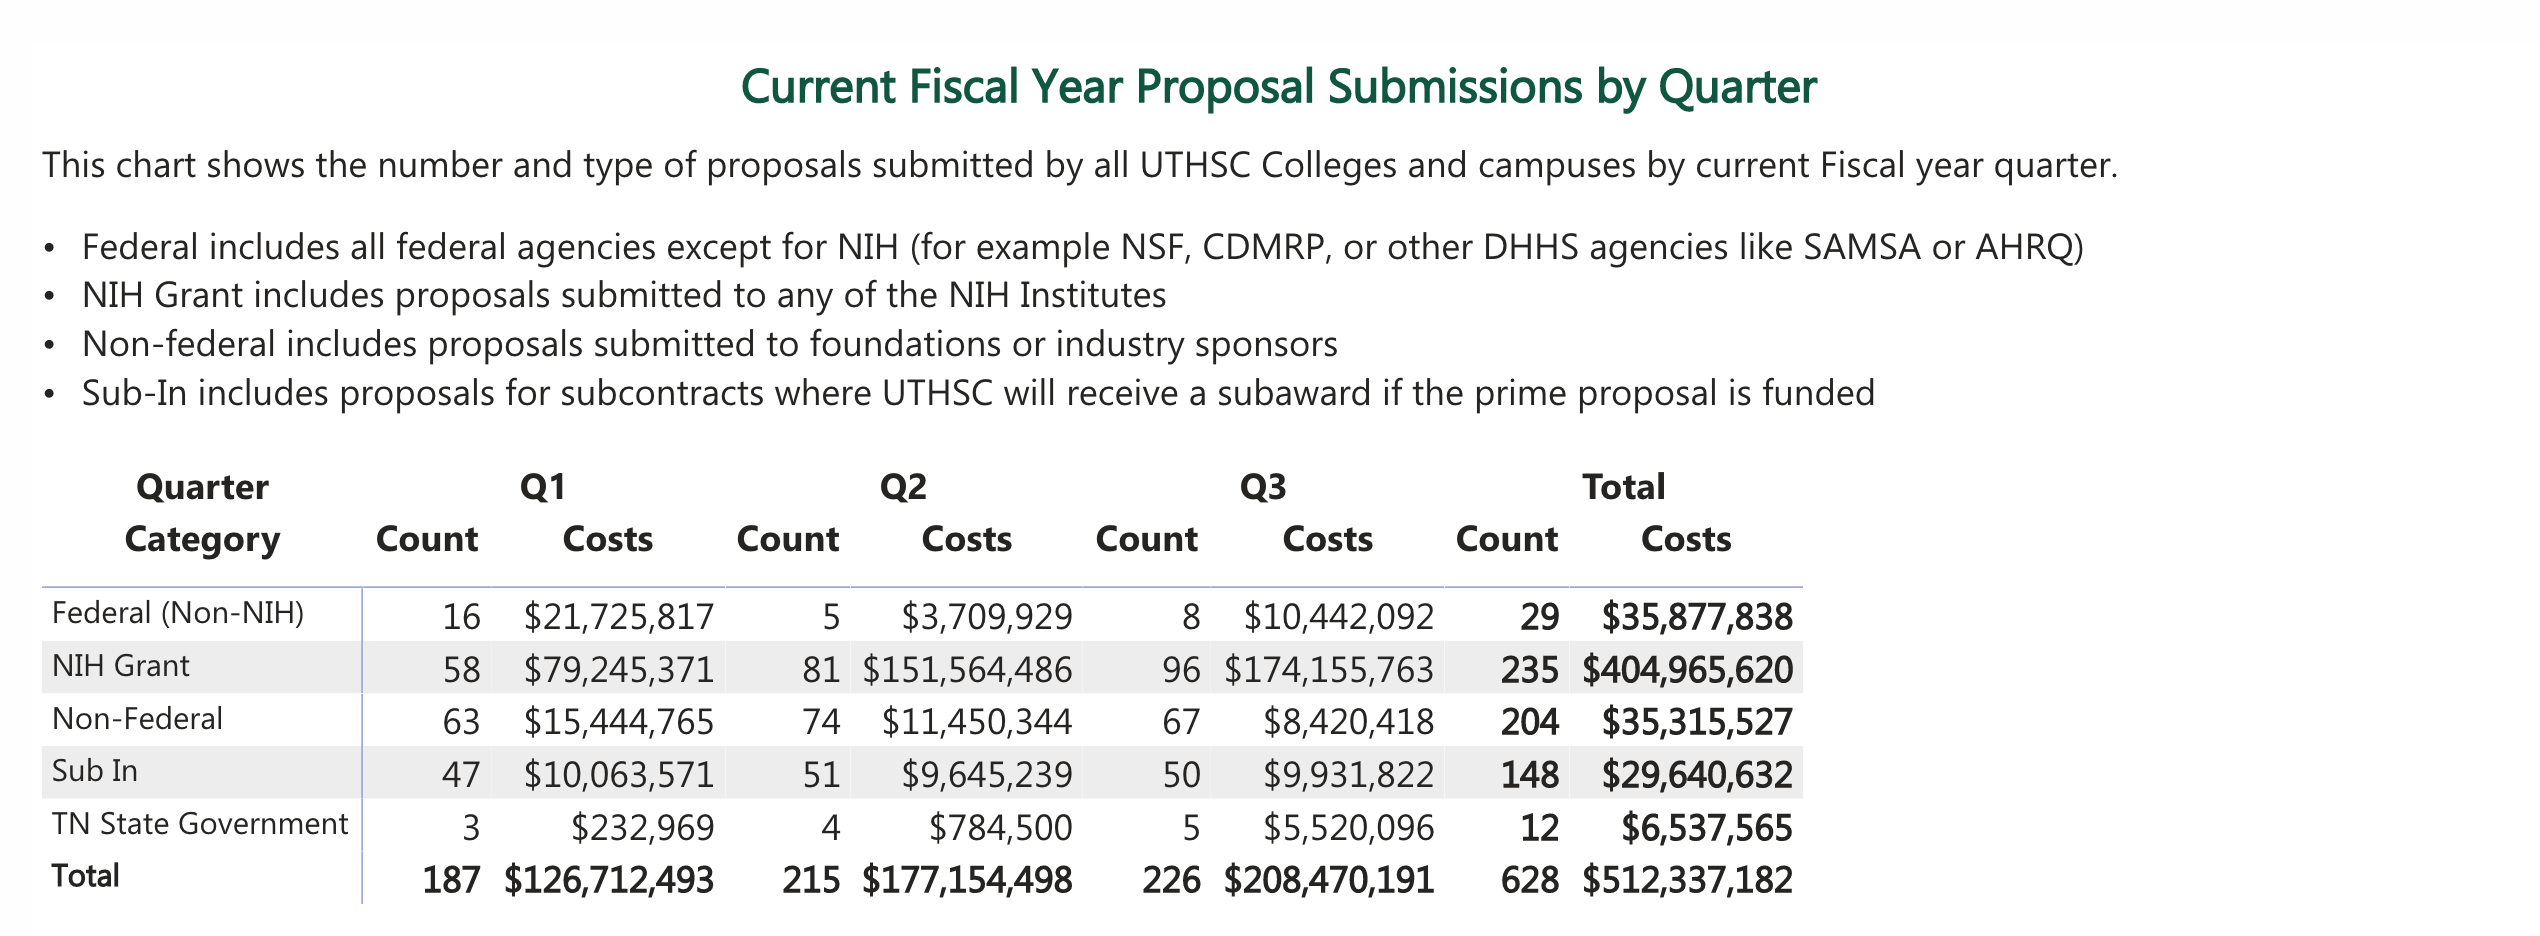 Current Fiscal Year Submissions by Quarter